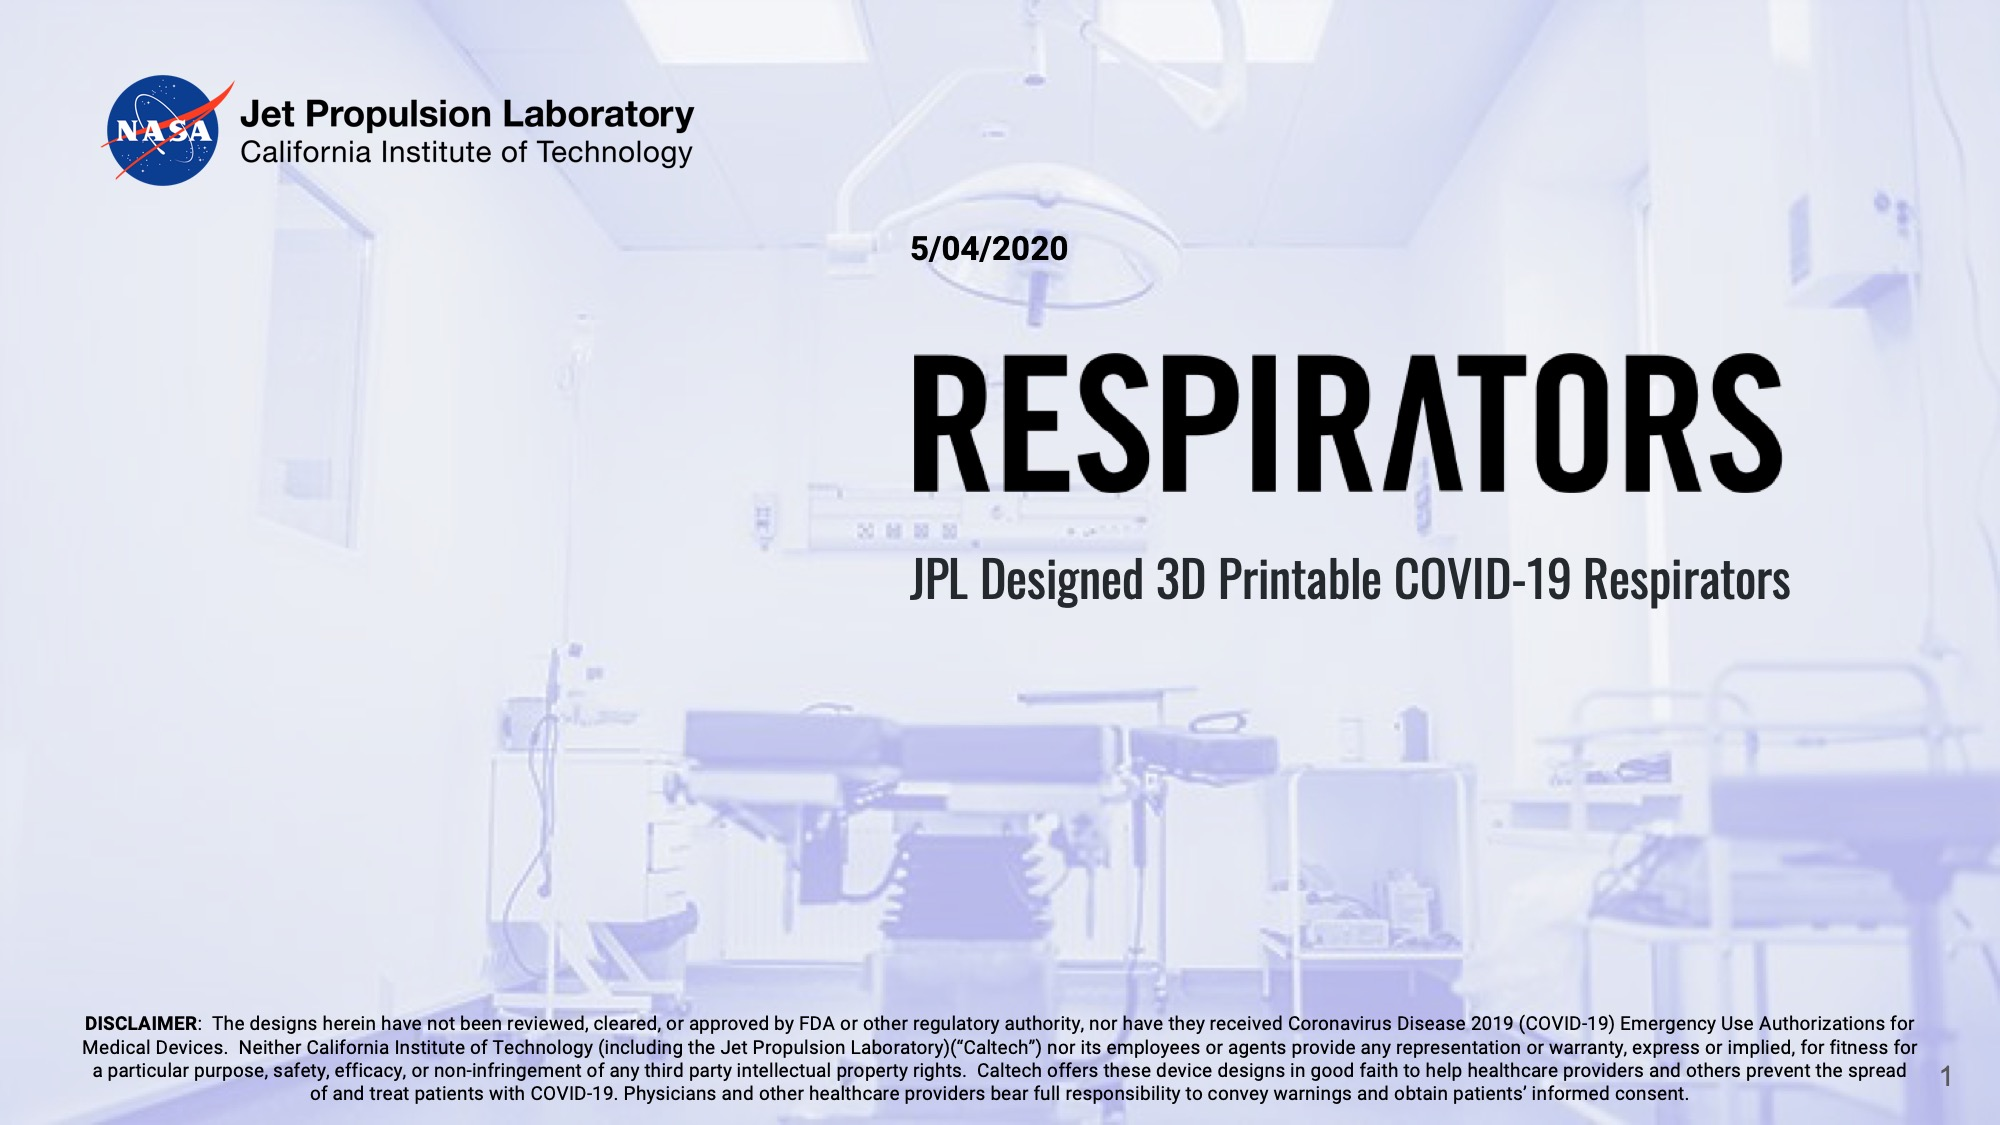 Title Slide: Respirators: JPL Designed 3D Printable COVID-19 Respirators